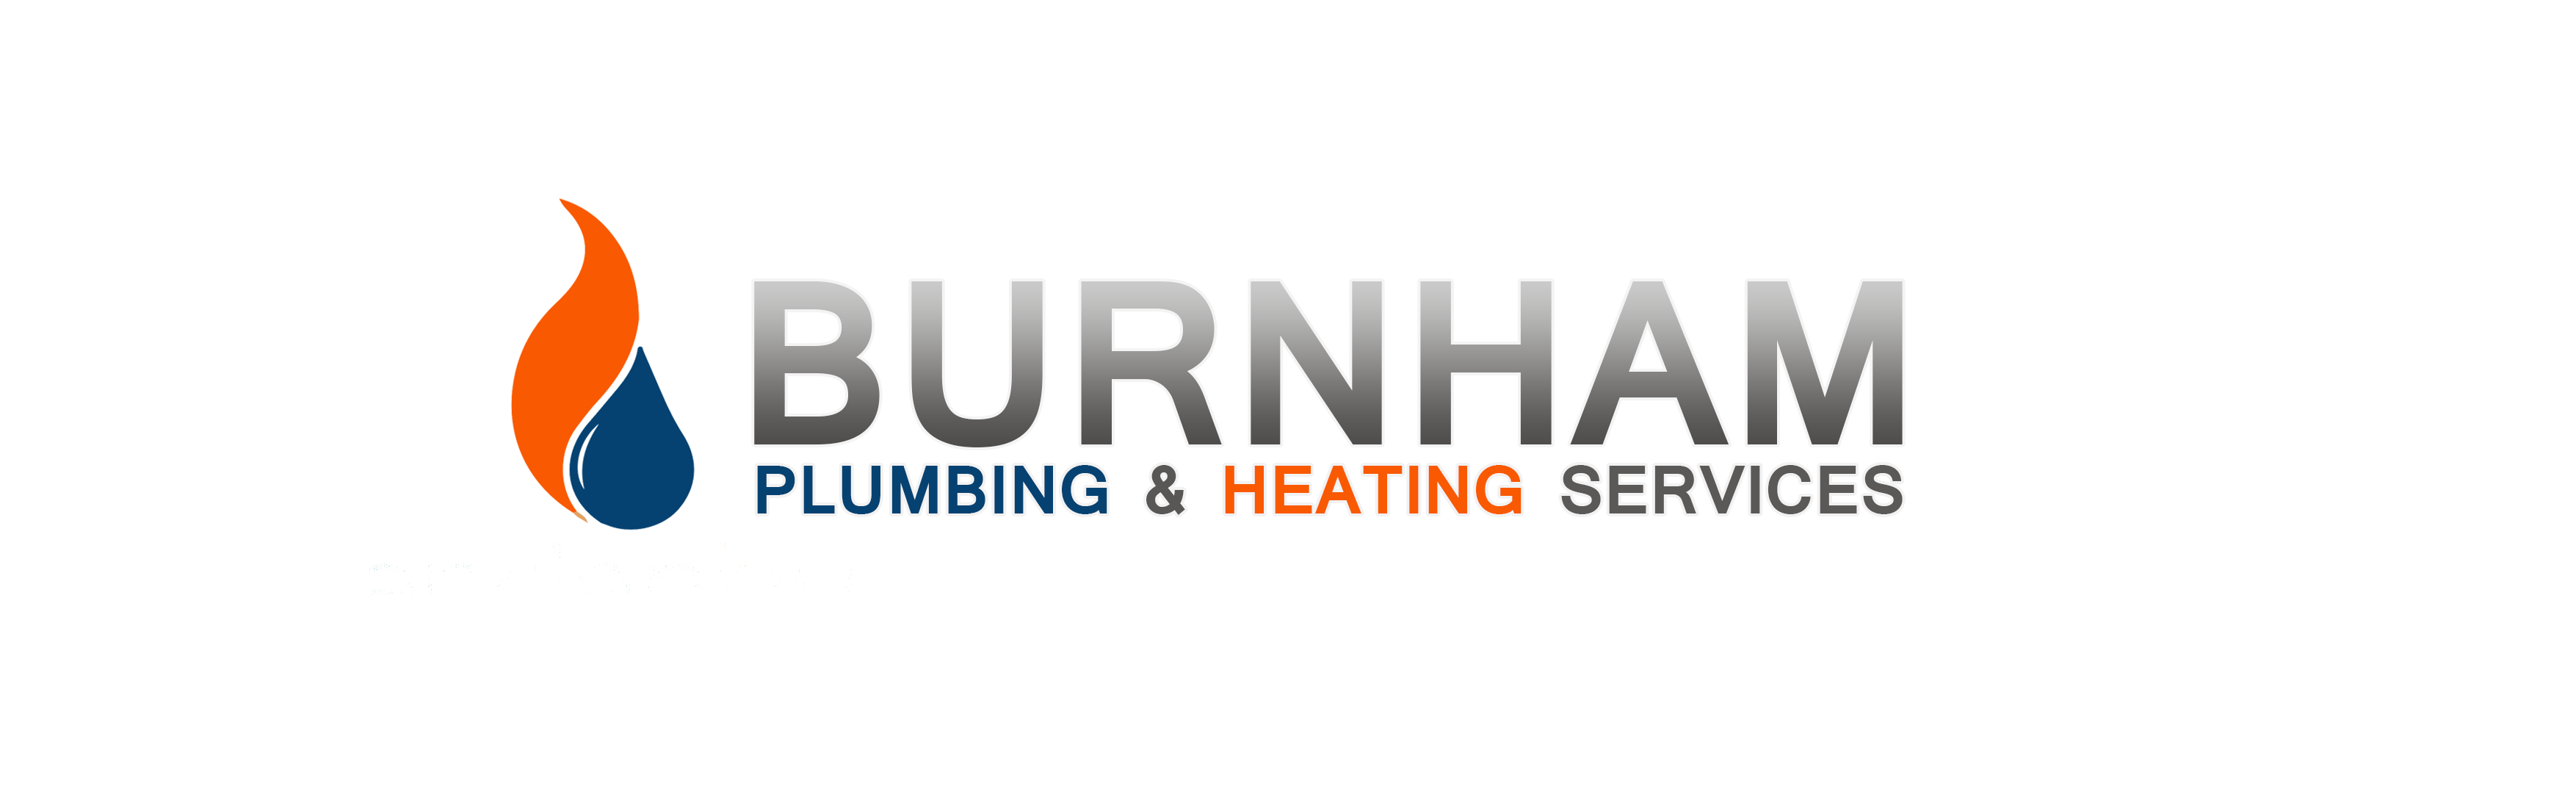 Burnham Plumbing & Heating Services